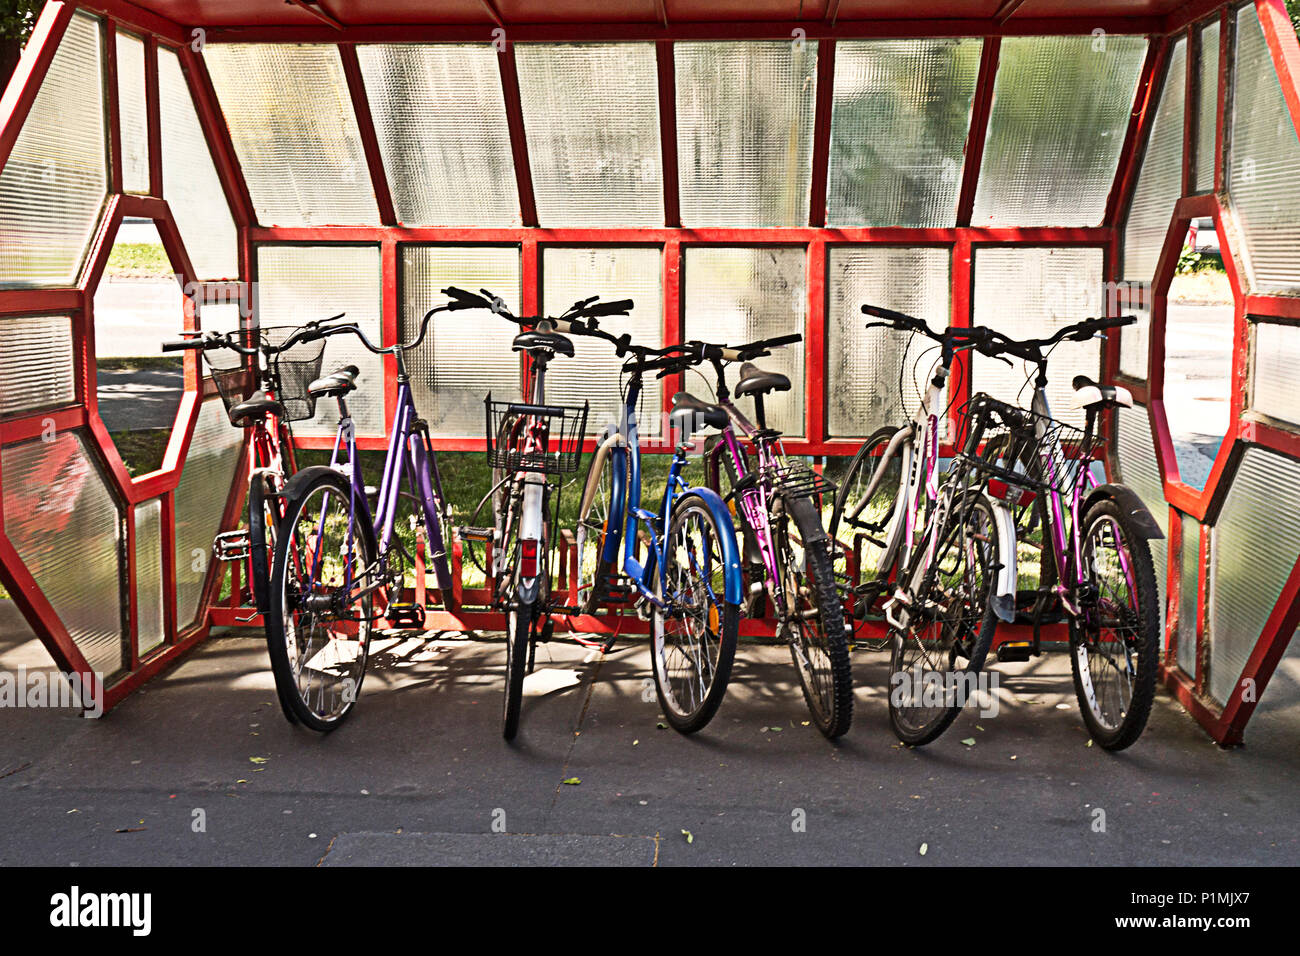 https www alamy com bicycles in a bicycle parking rack image207592959 html